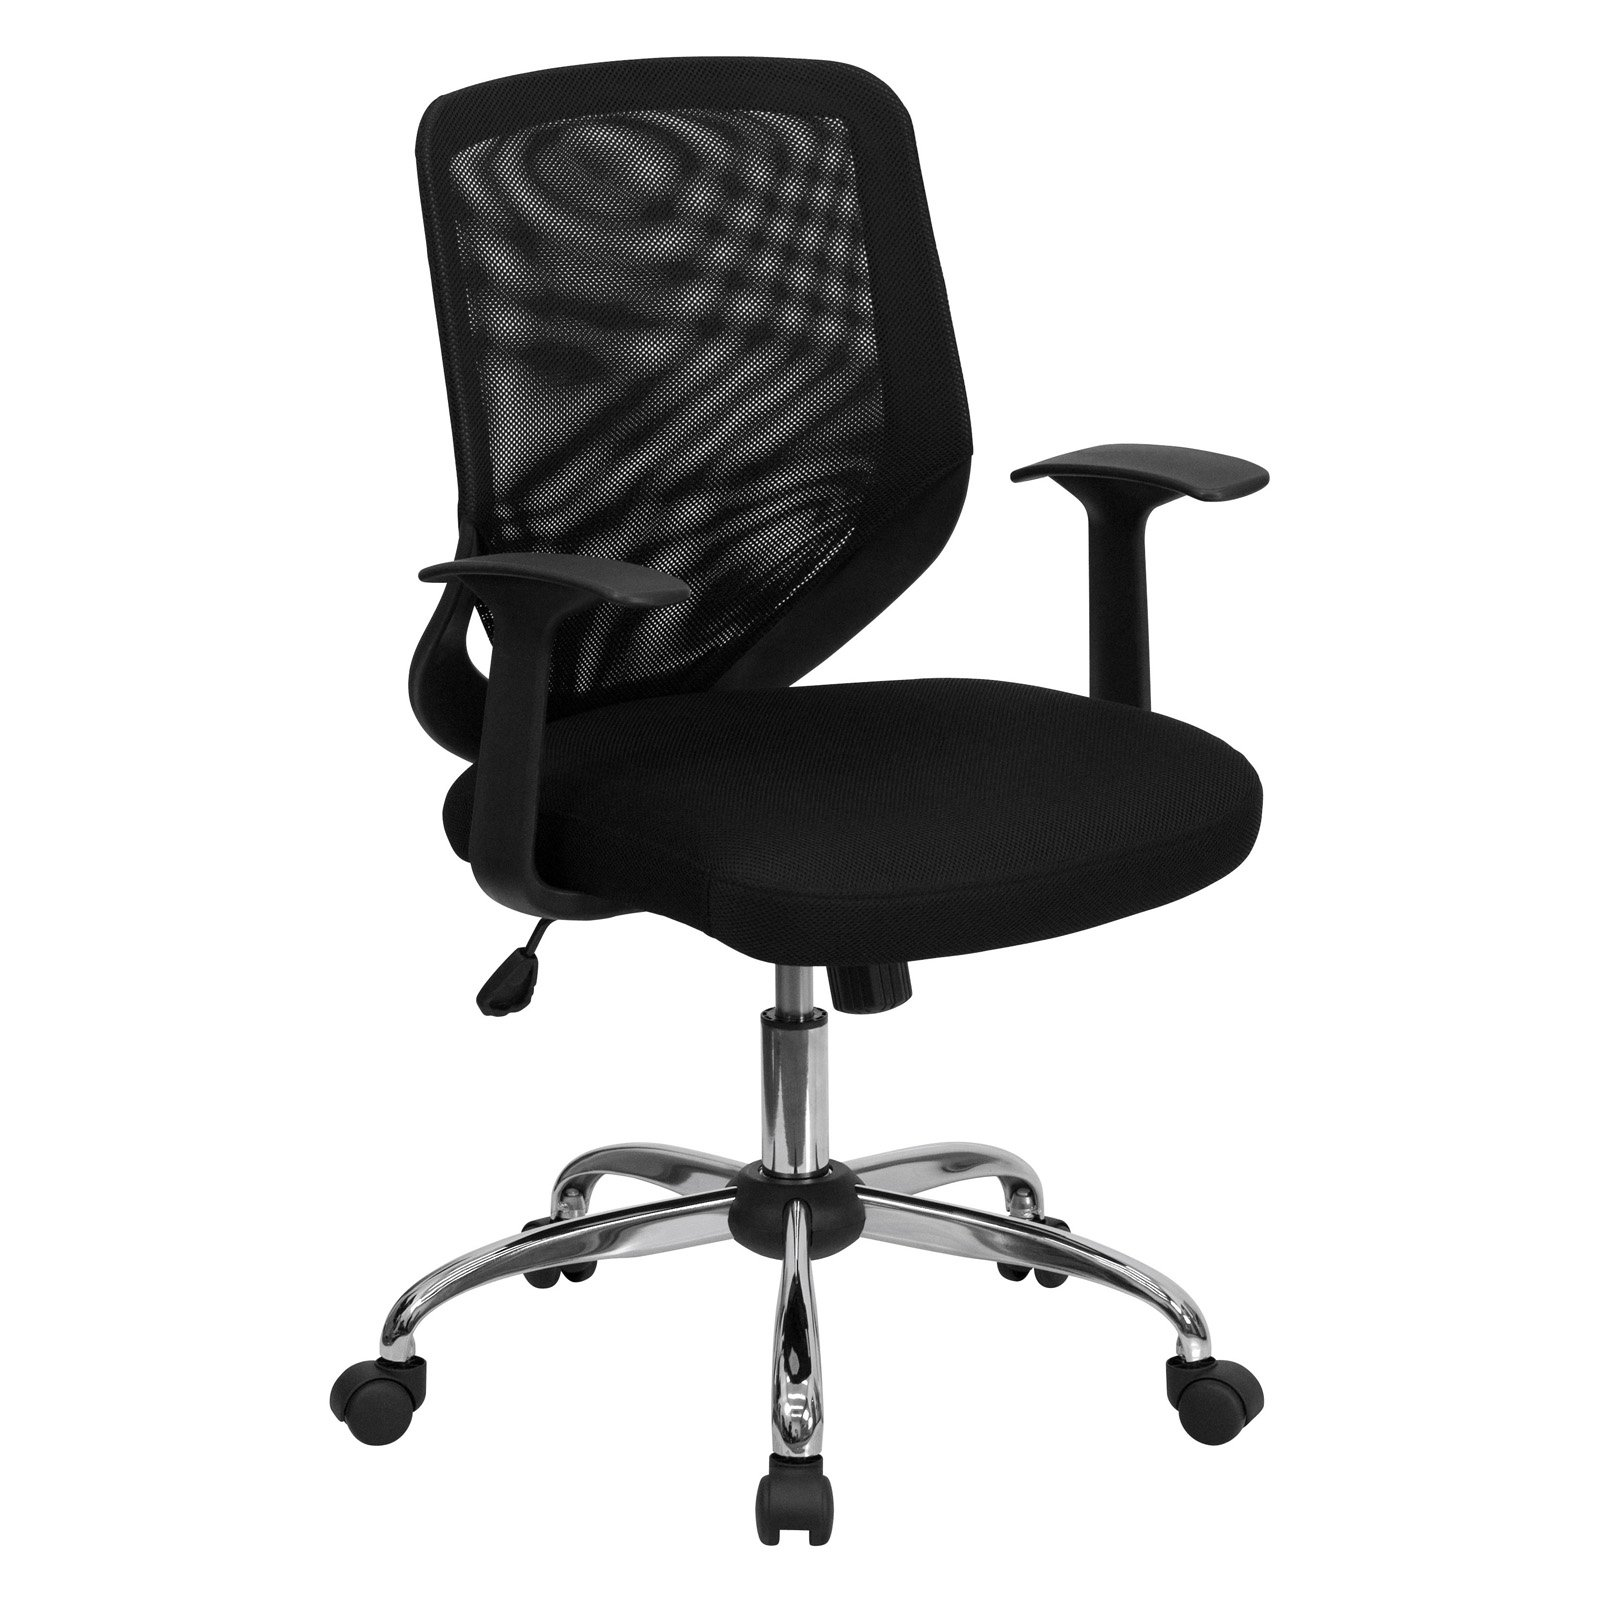 Mesh Office Chair with T-Arms, Black